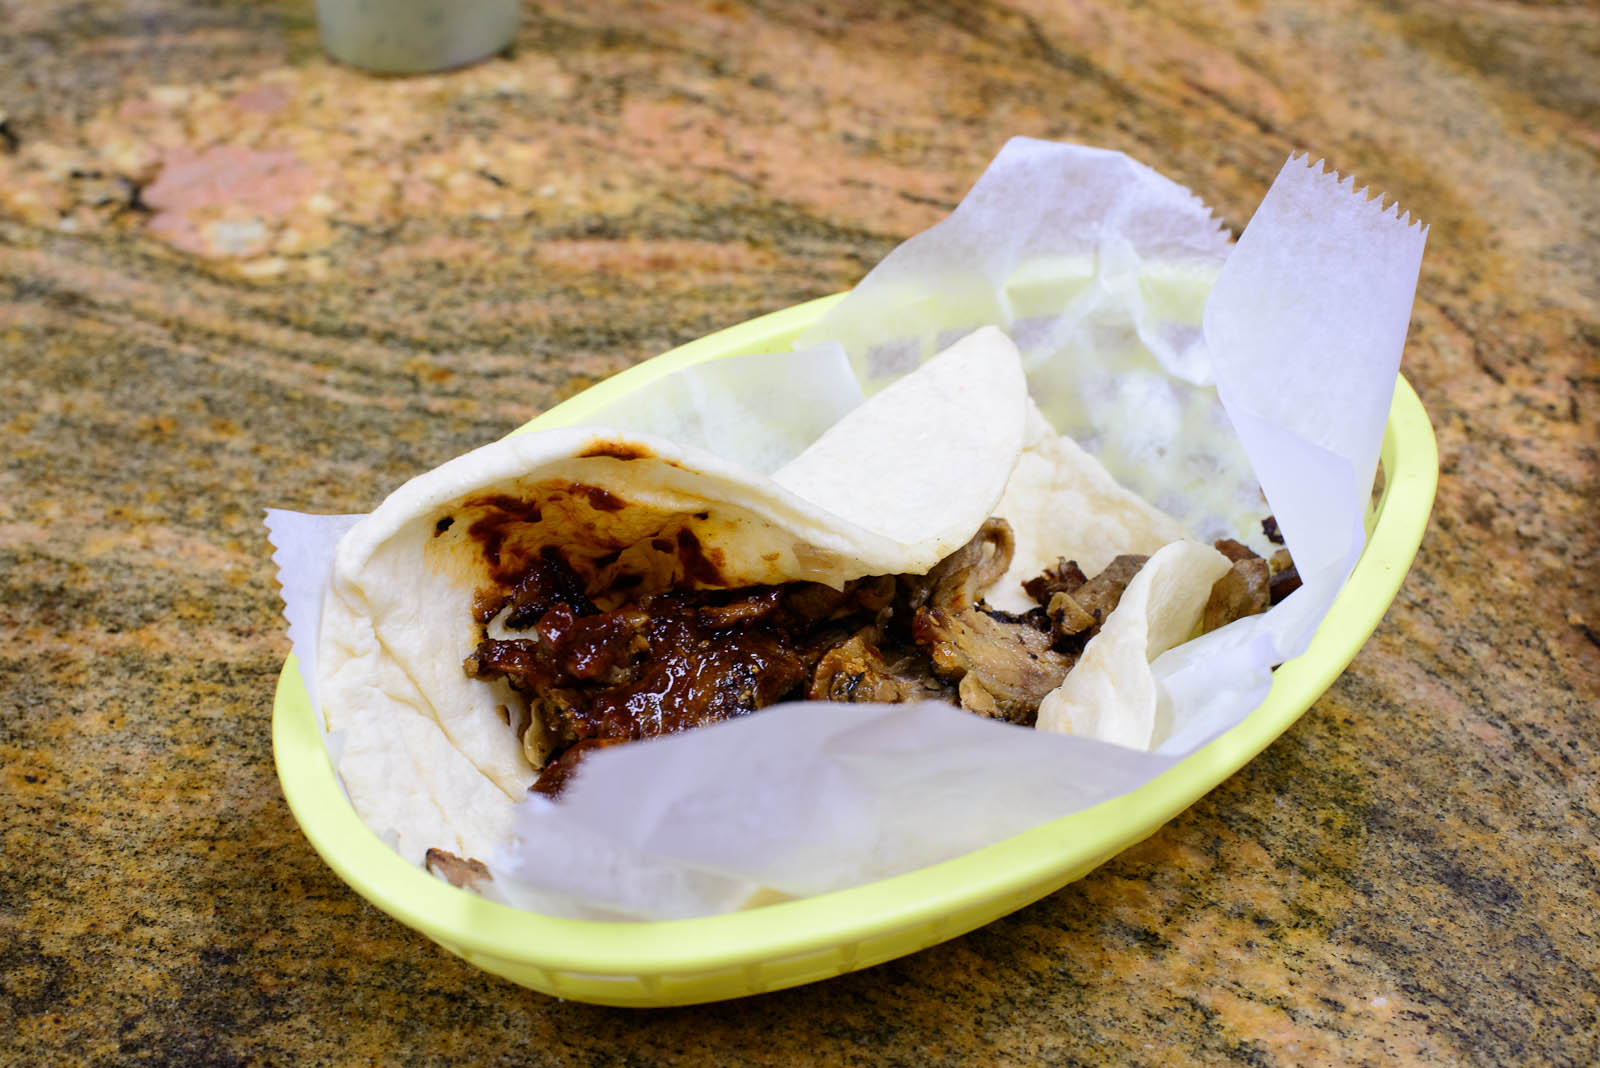 Taco arabe - spit-roasted pork and onions wrapped in a thick tor